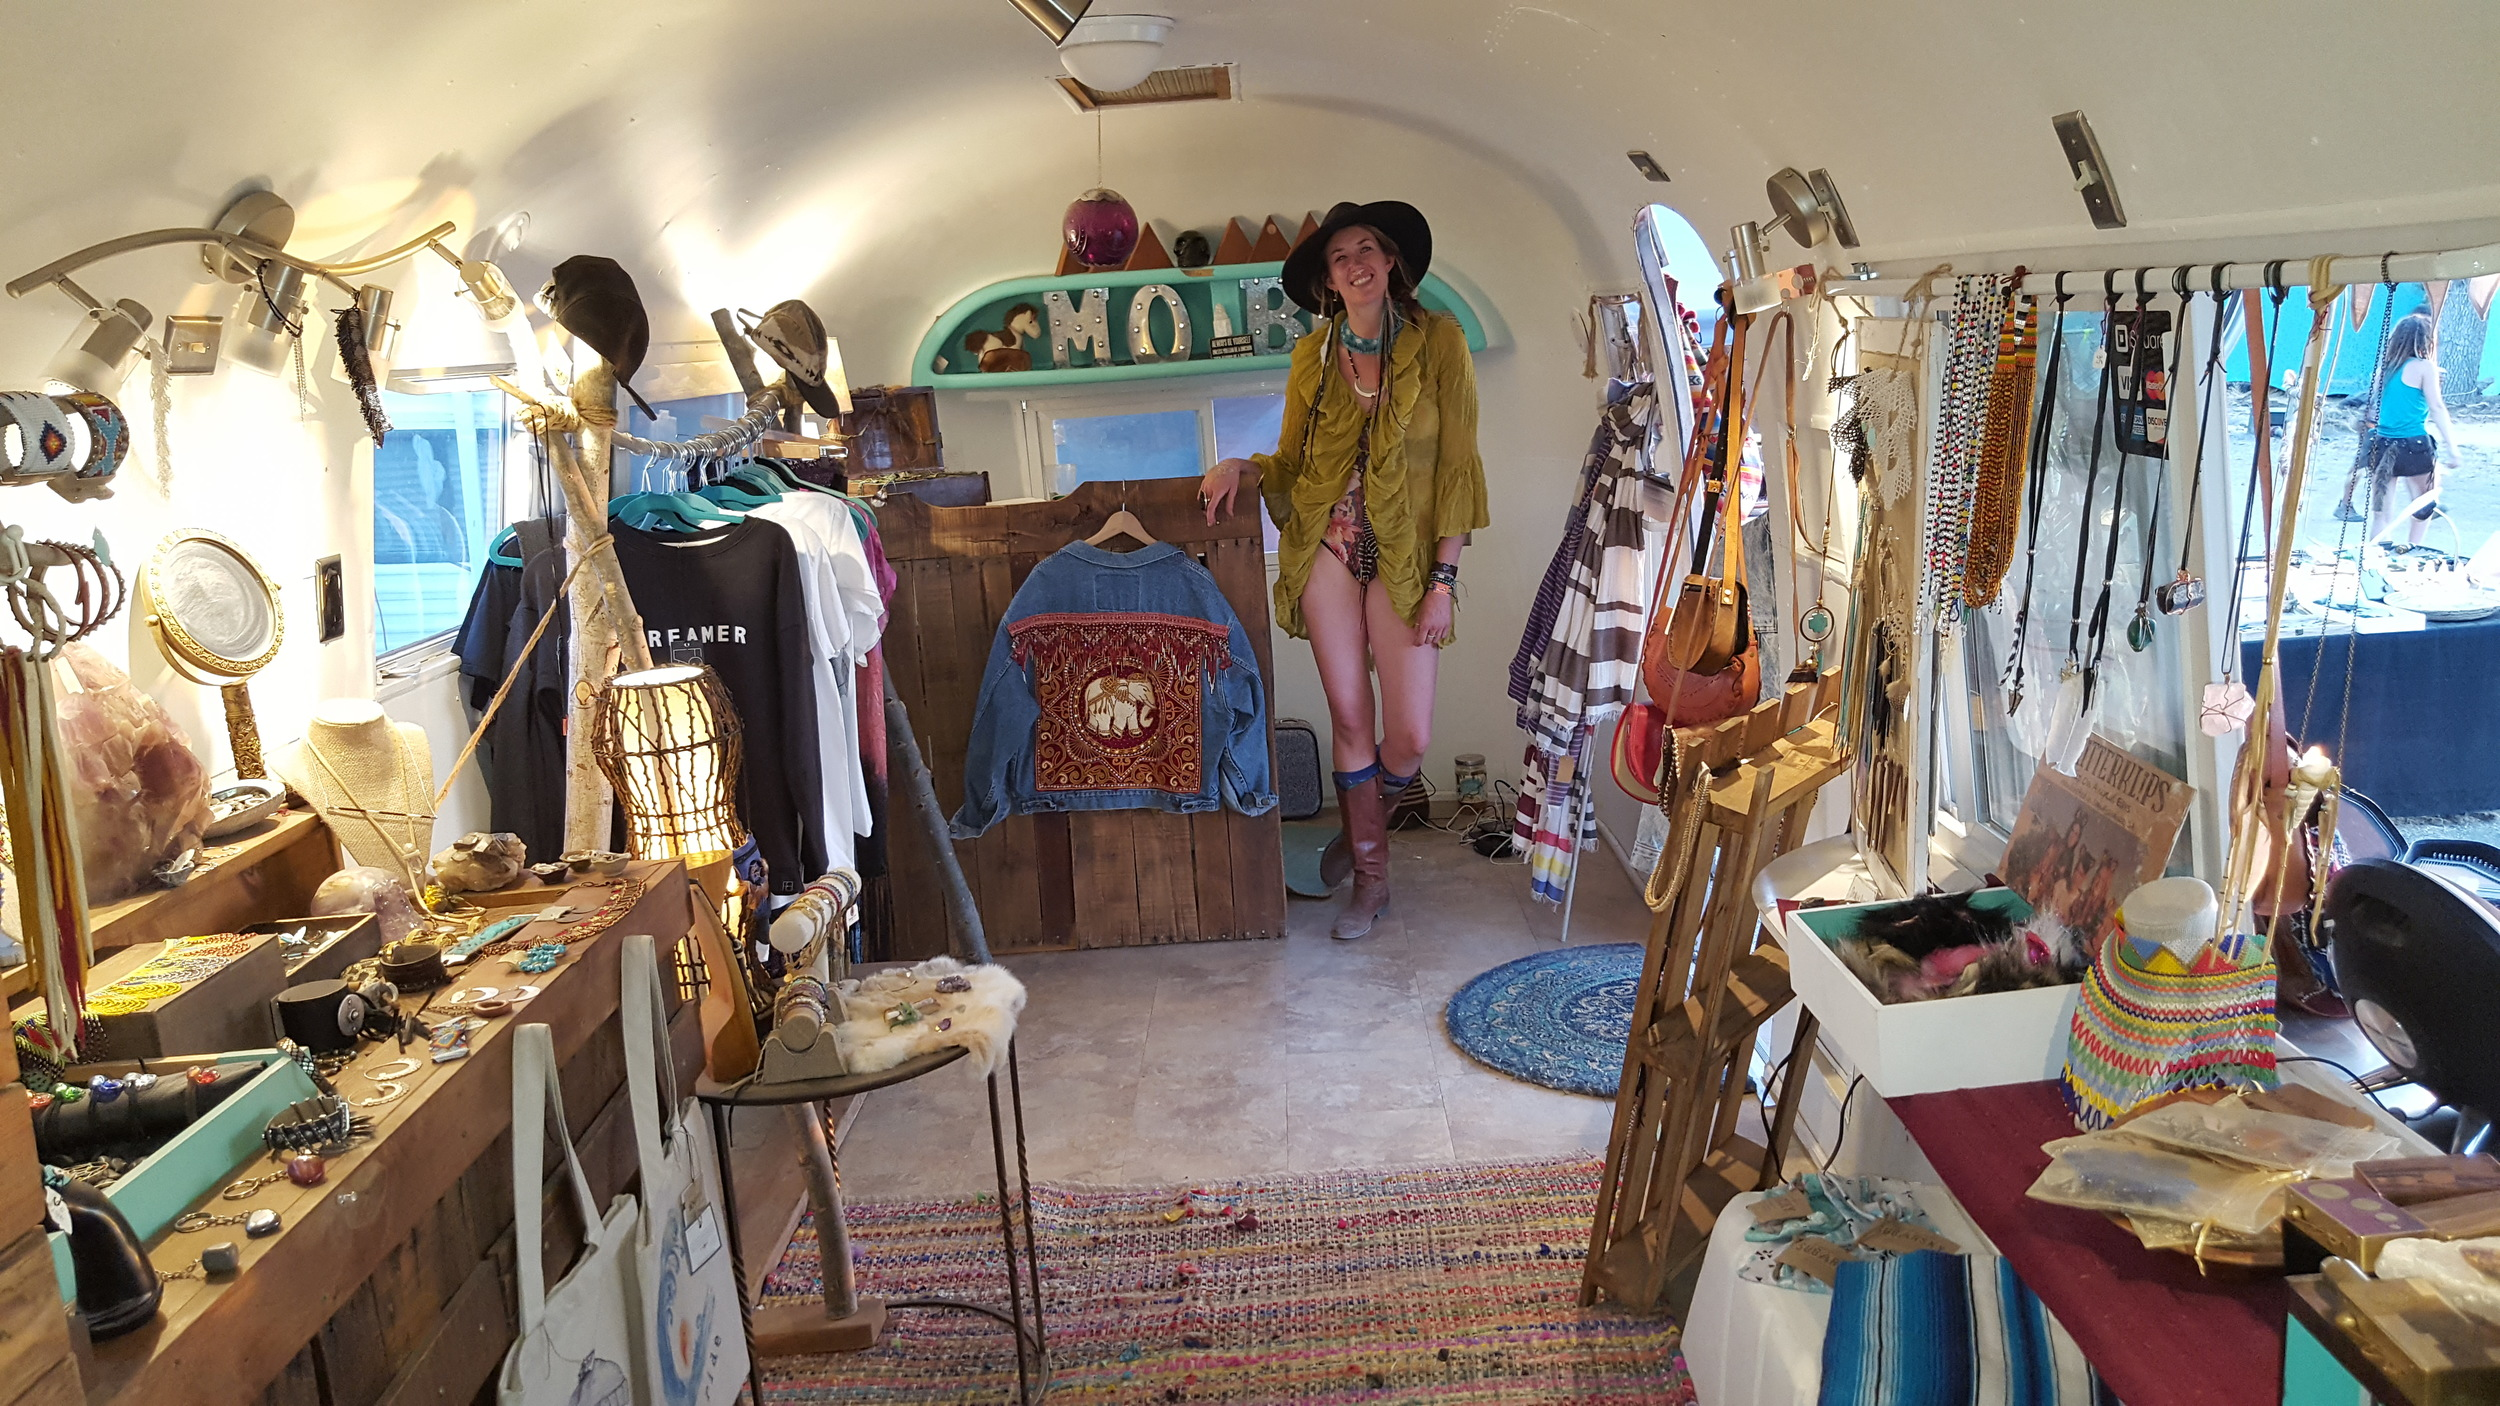 one of my favorite clothing vendors @ LIB/ her store is an Airstream!